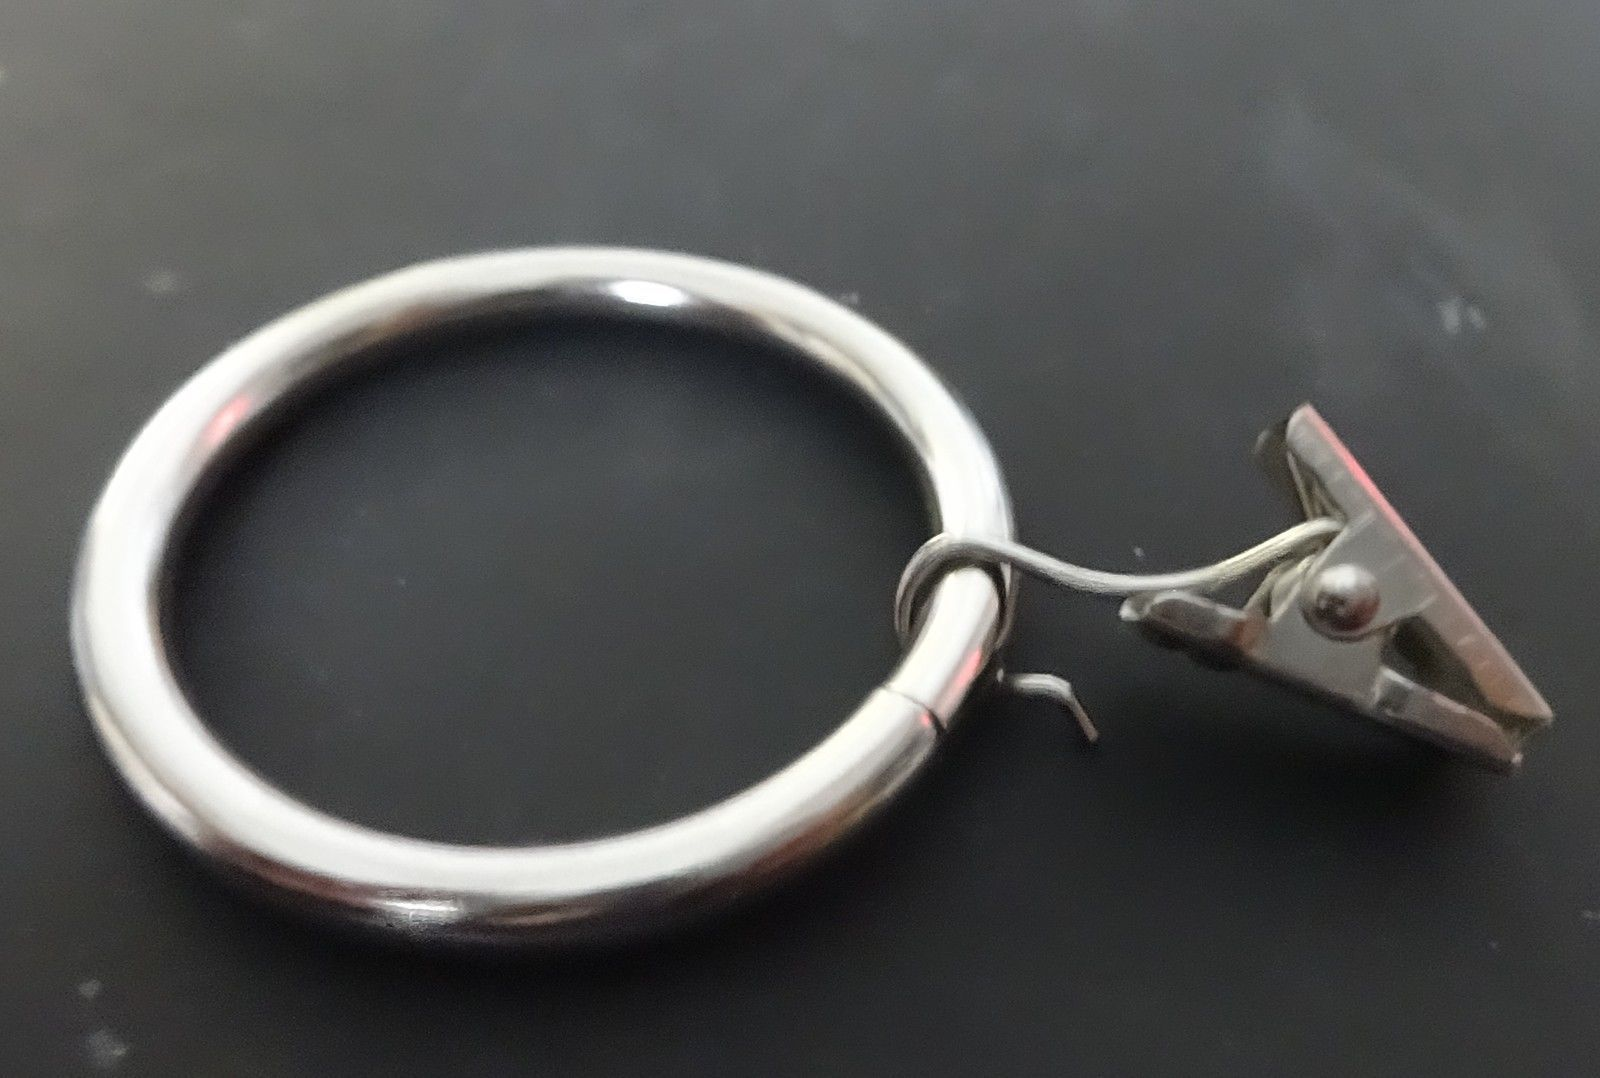 10 QTY: Premium Polished Nickel Plated Steel Drapery Ring w/ clips -Extra Thick-